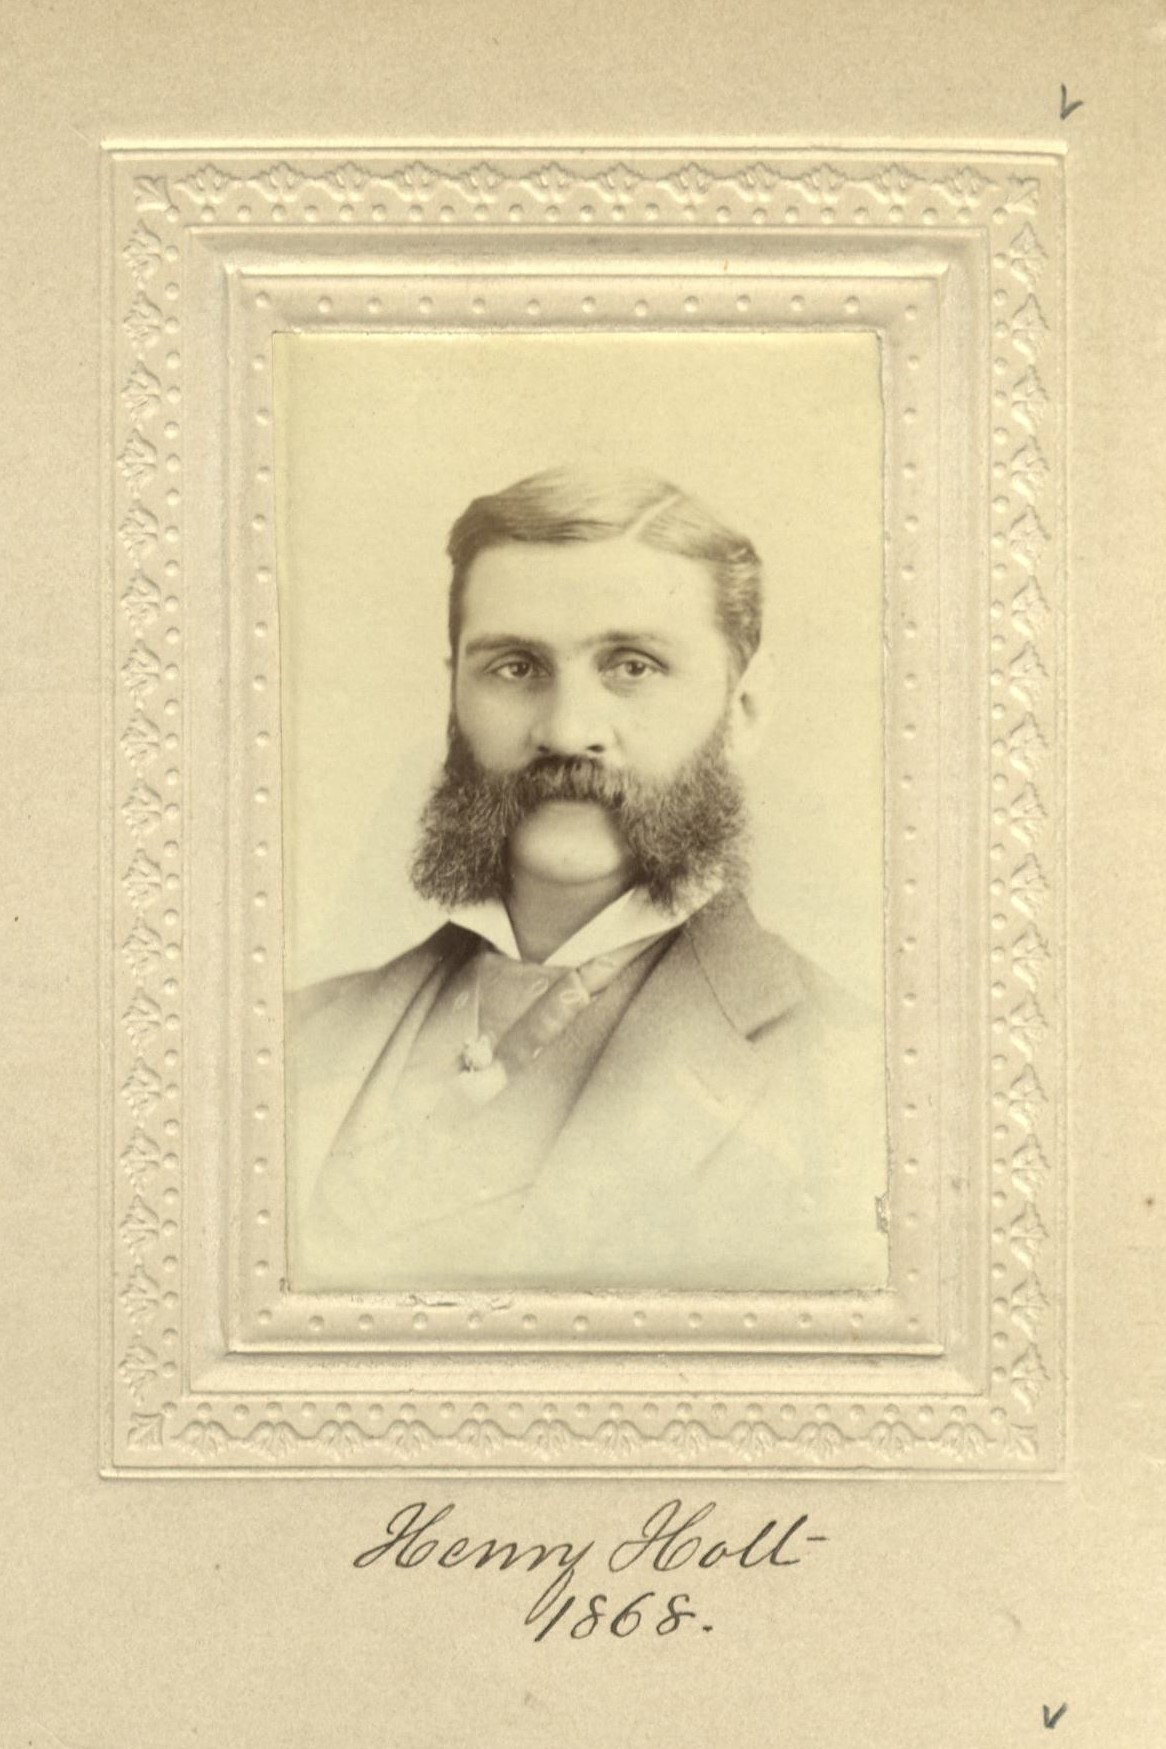 Member portrait of Henry Holt